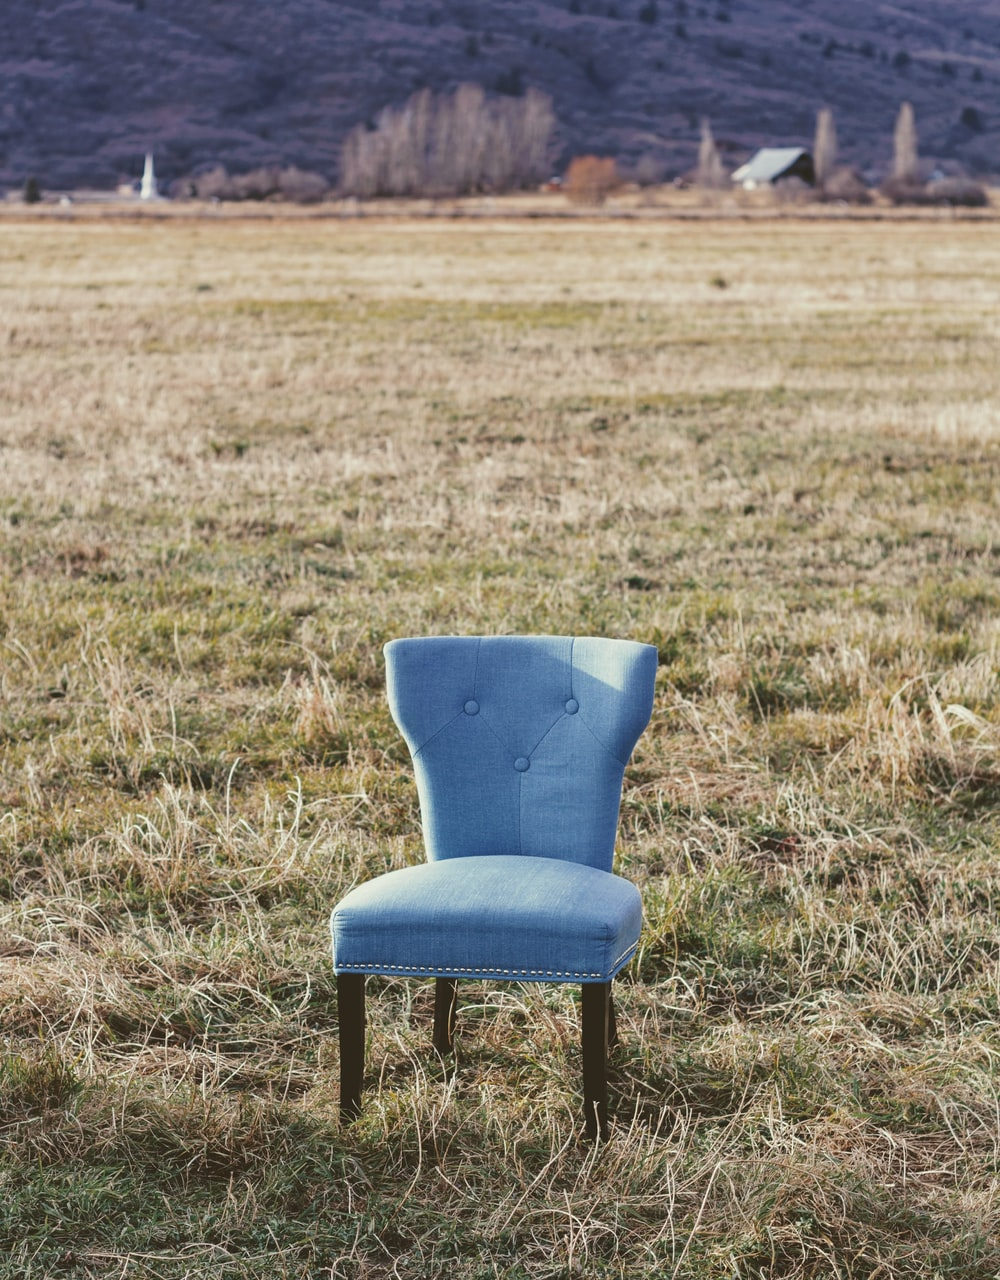 gray padded chair on grass field